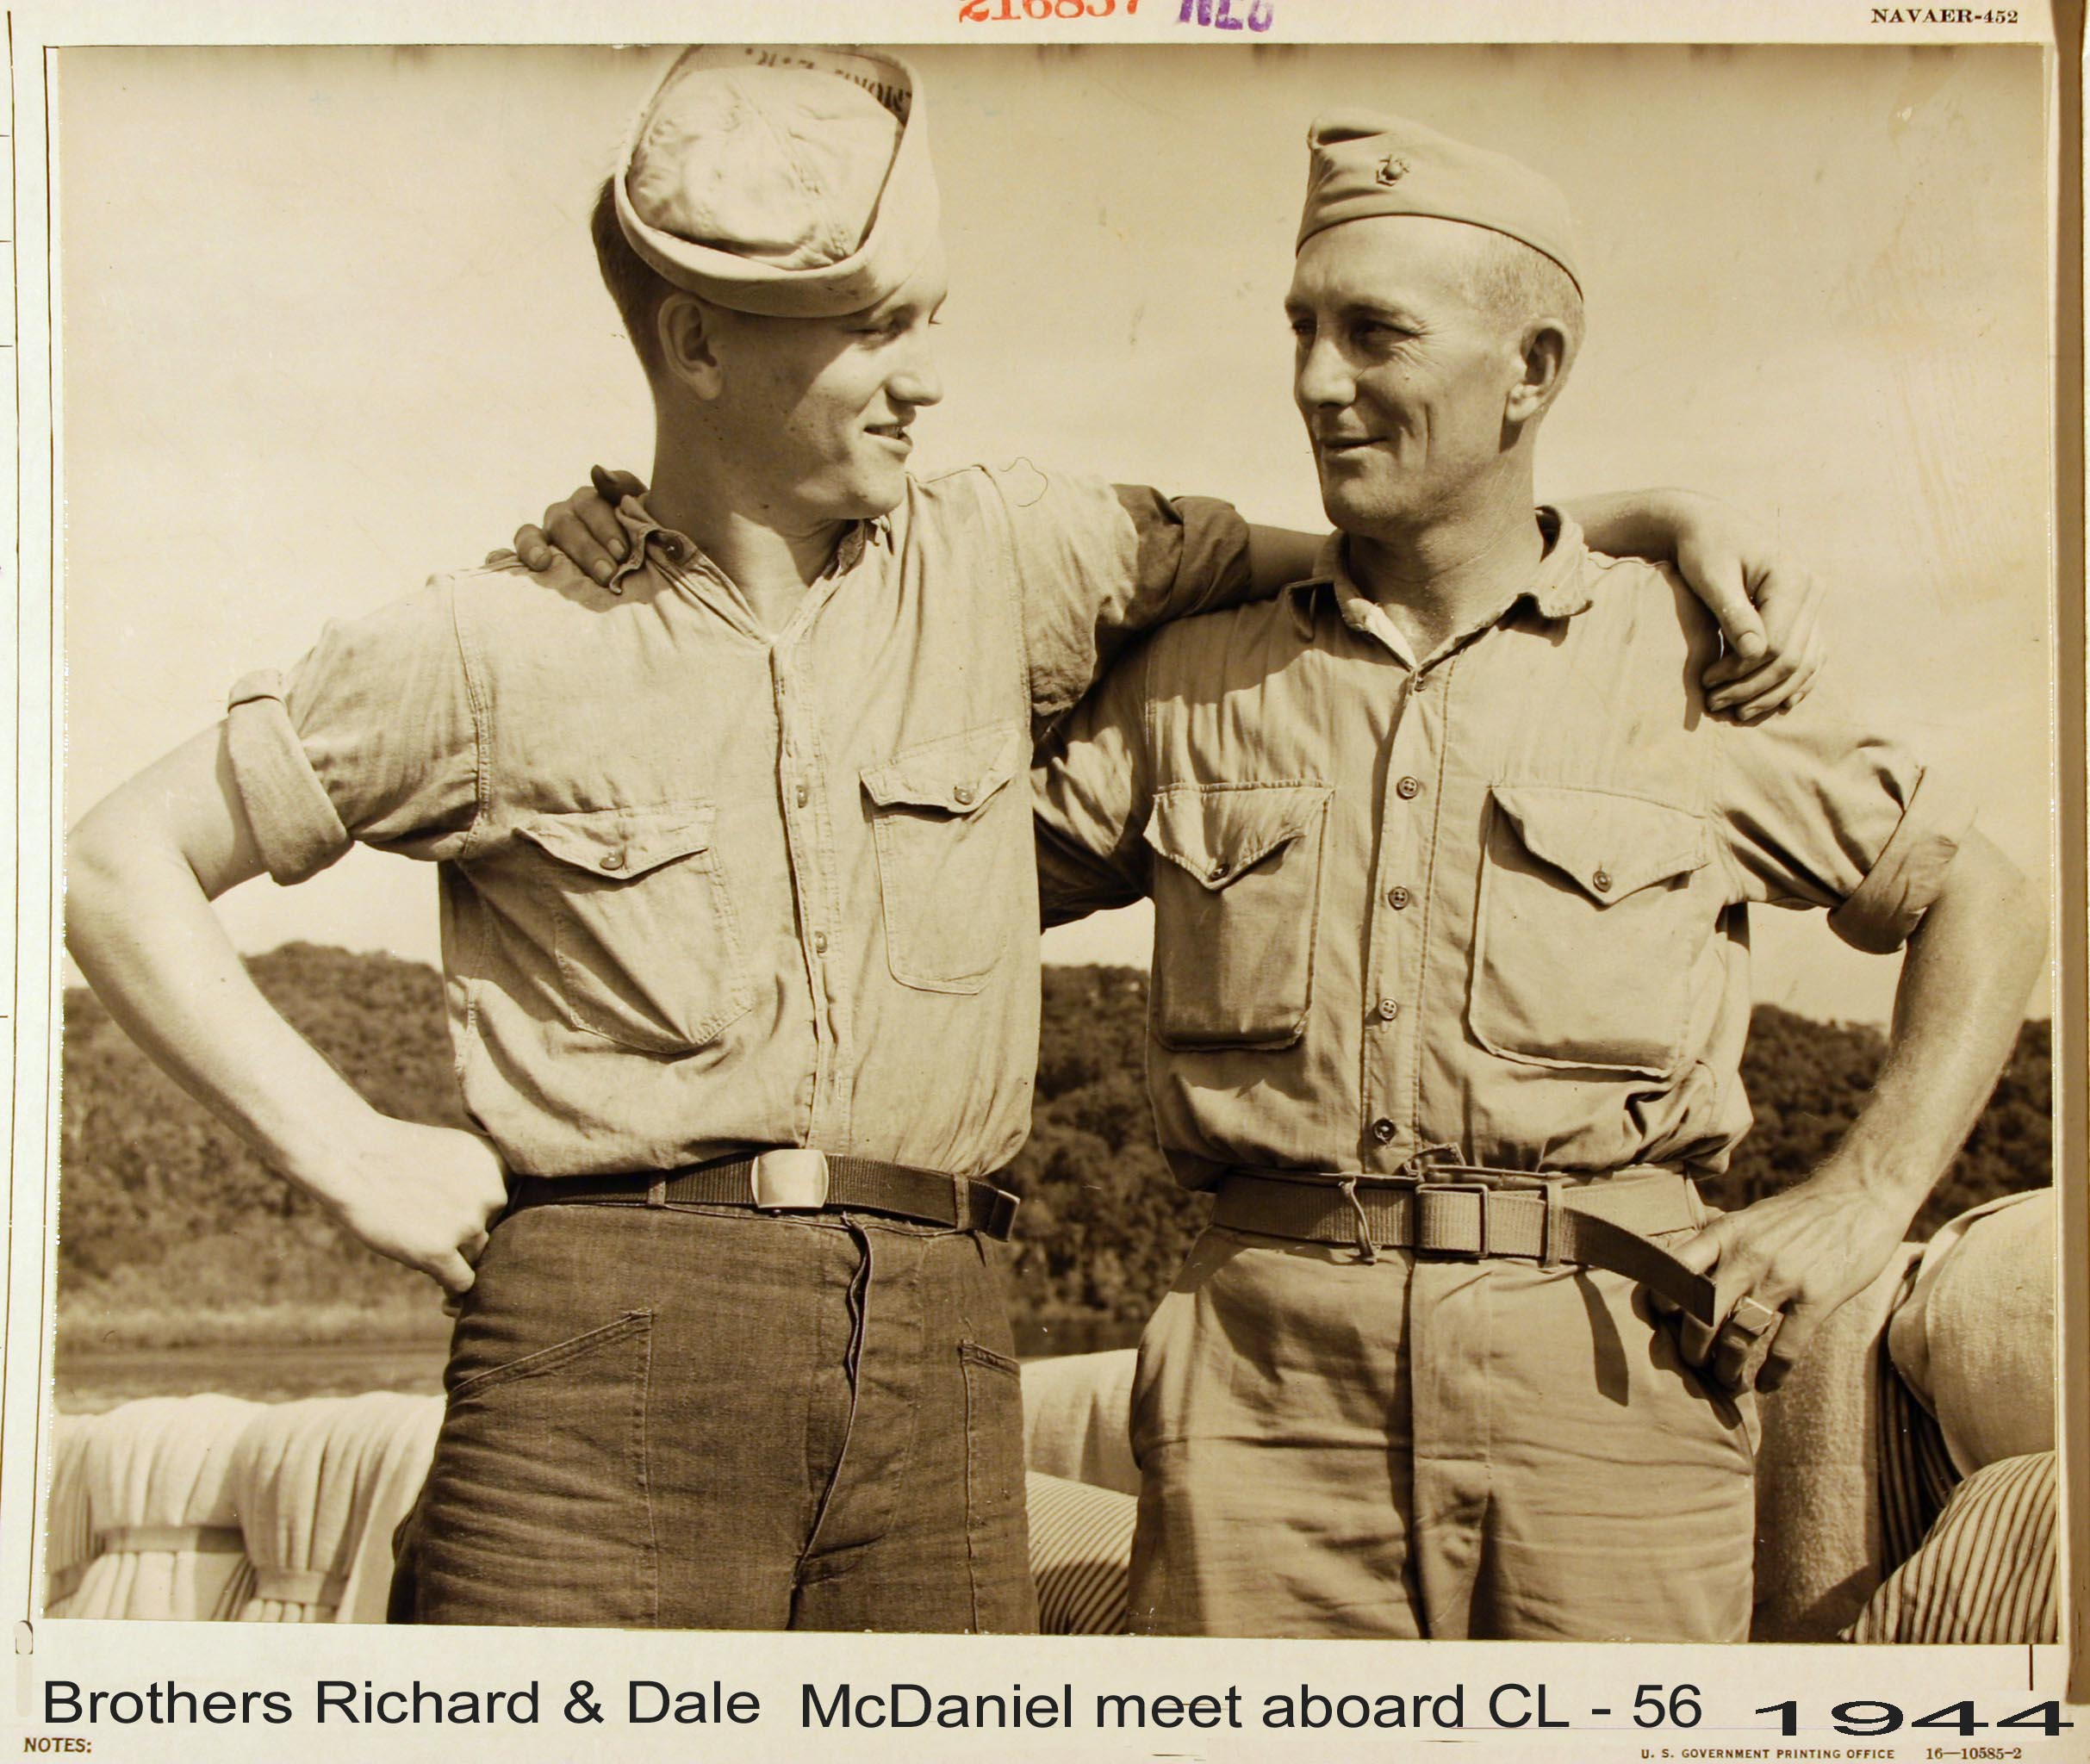 Brothers Richard and Dale McDaniel 1944